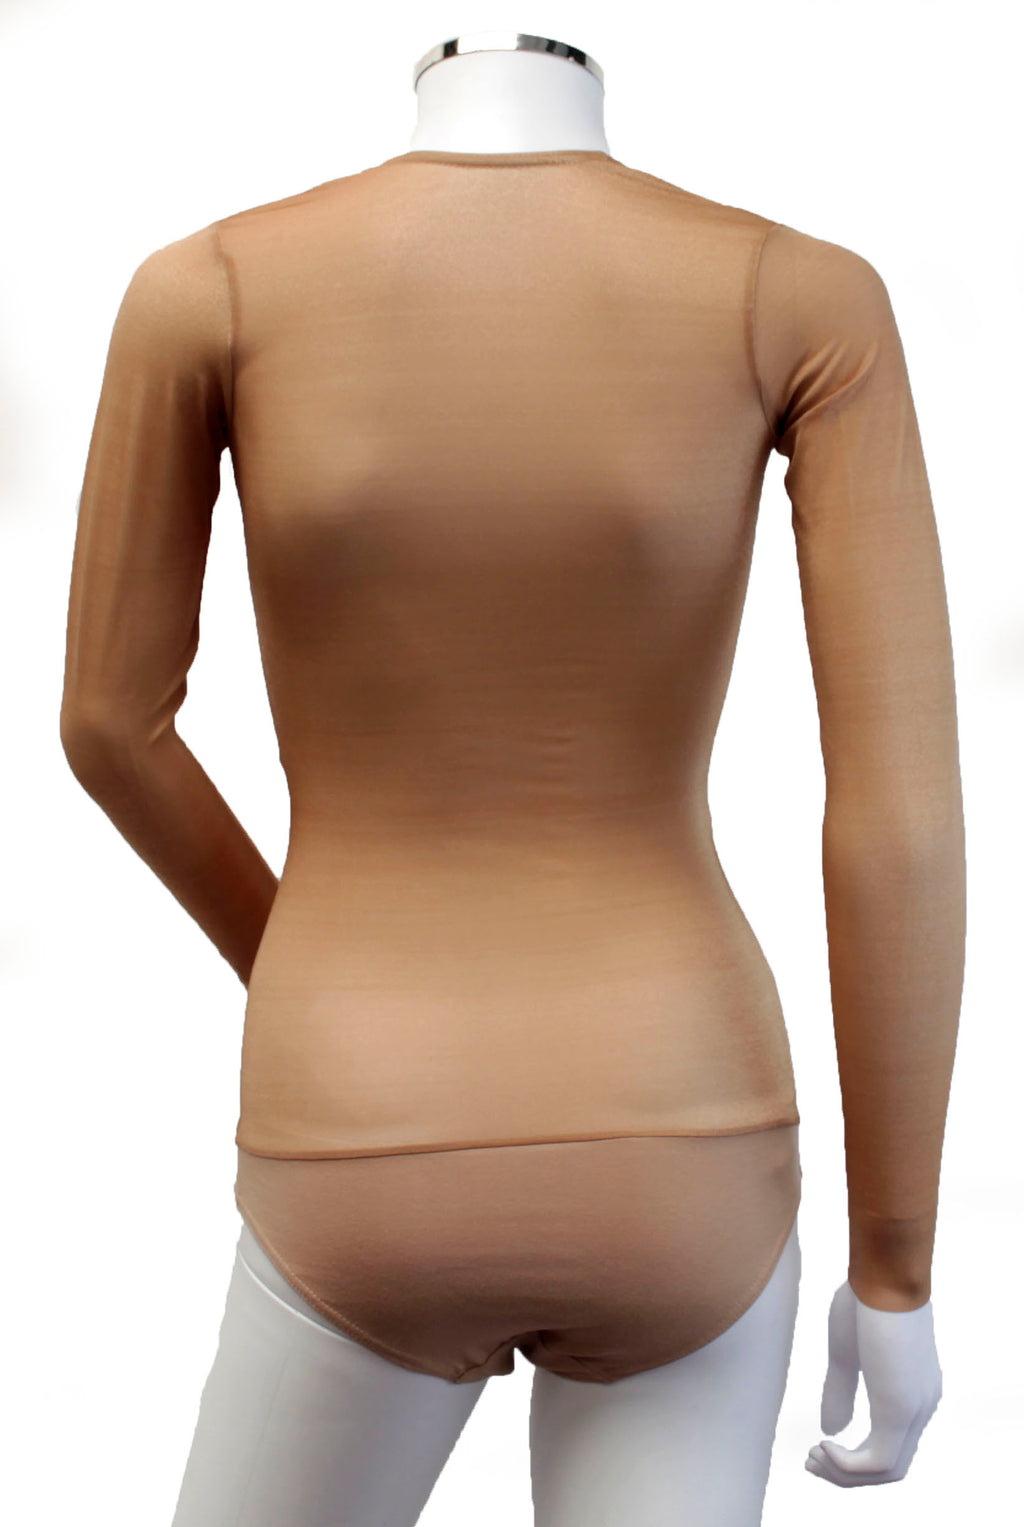 Underbust with Sleeves - Flesh Shimmer Illusion